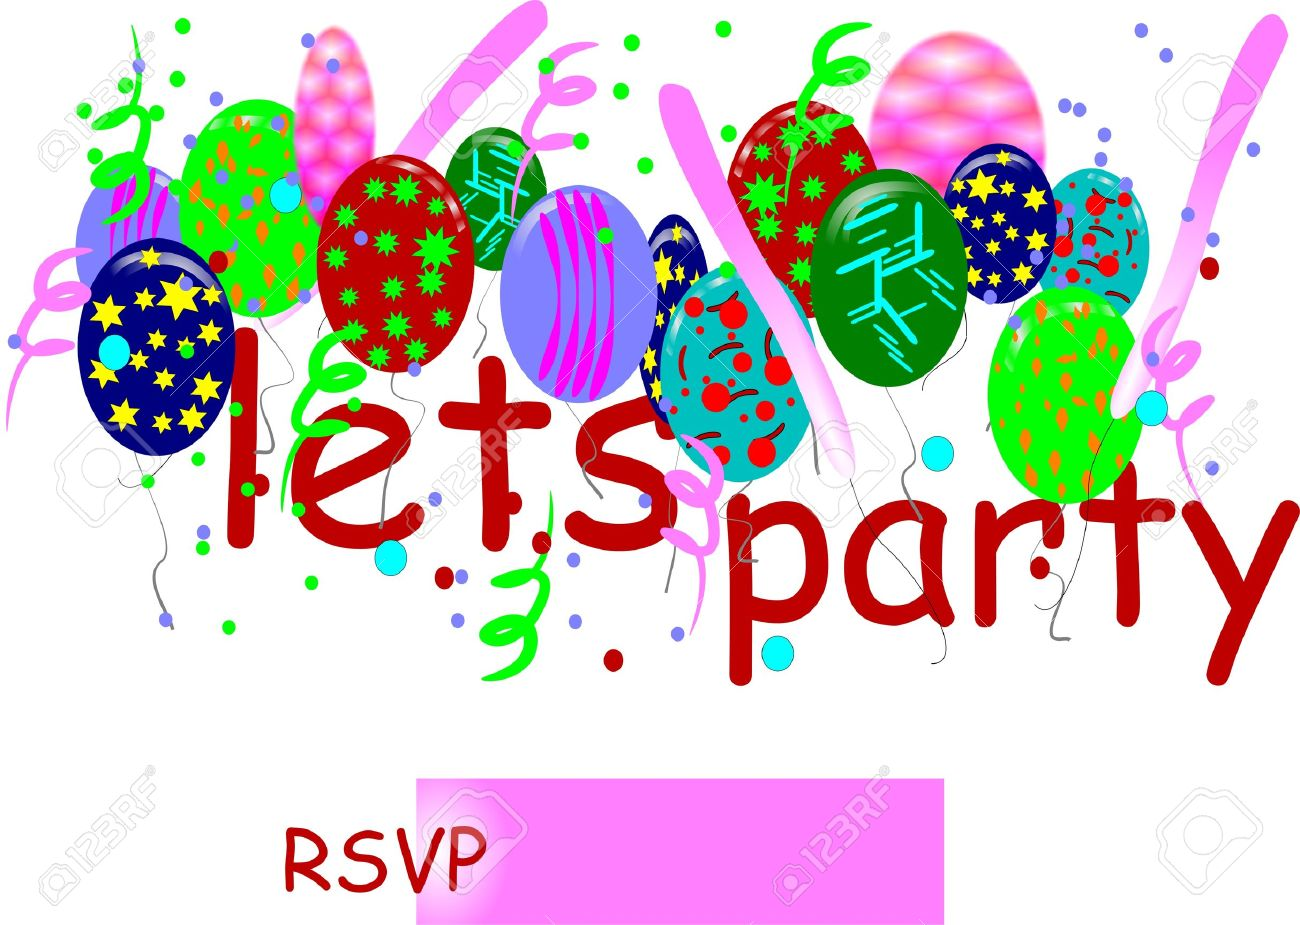 Let's Party Invitation Card